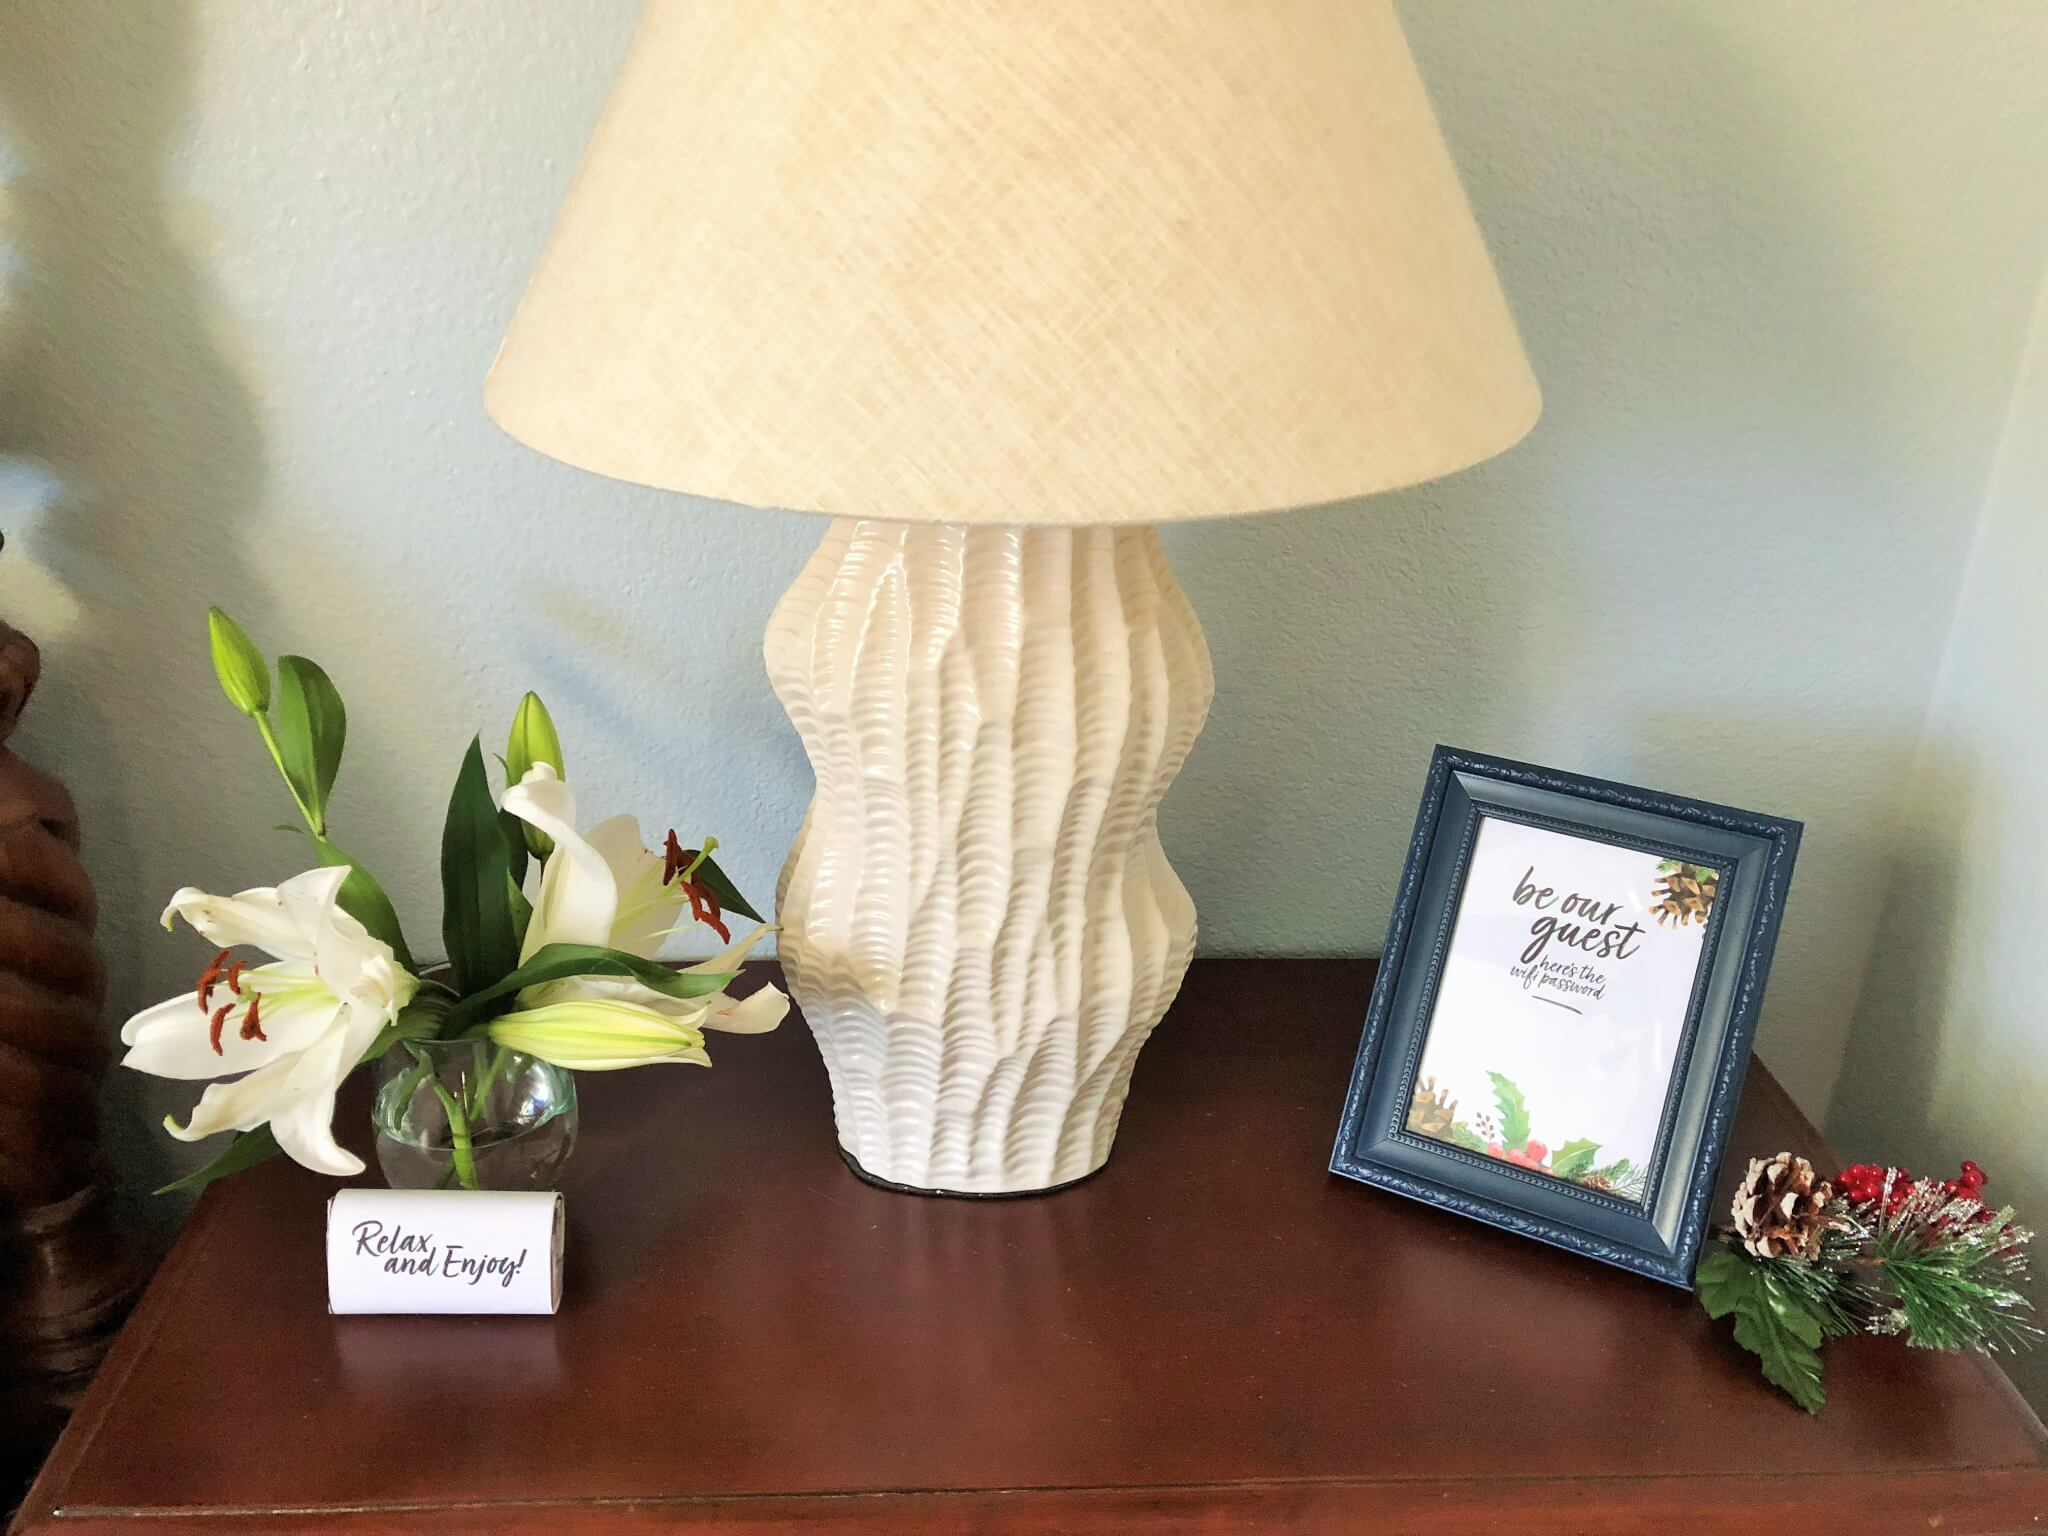 free wifi password on night stand with flowers for guest room